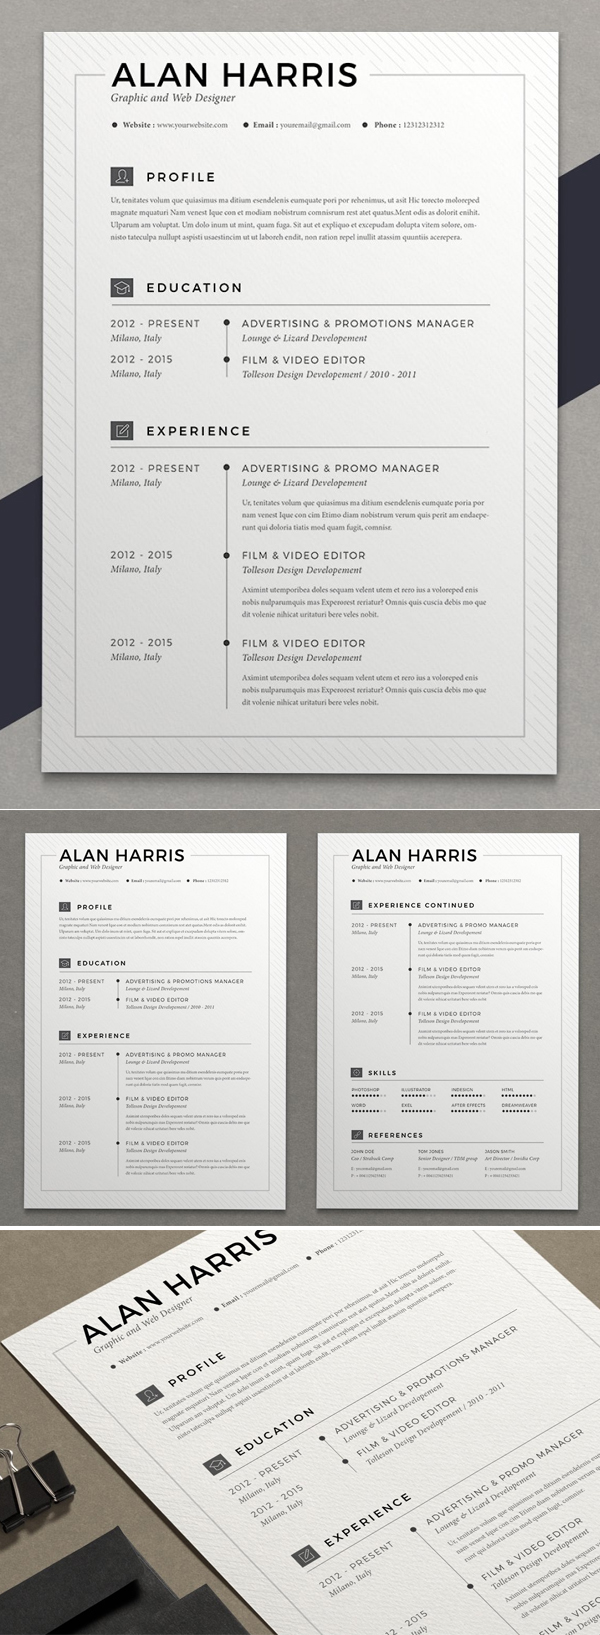 Resume Alan (2 pages)